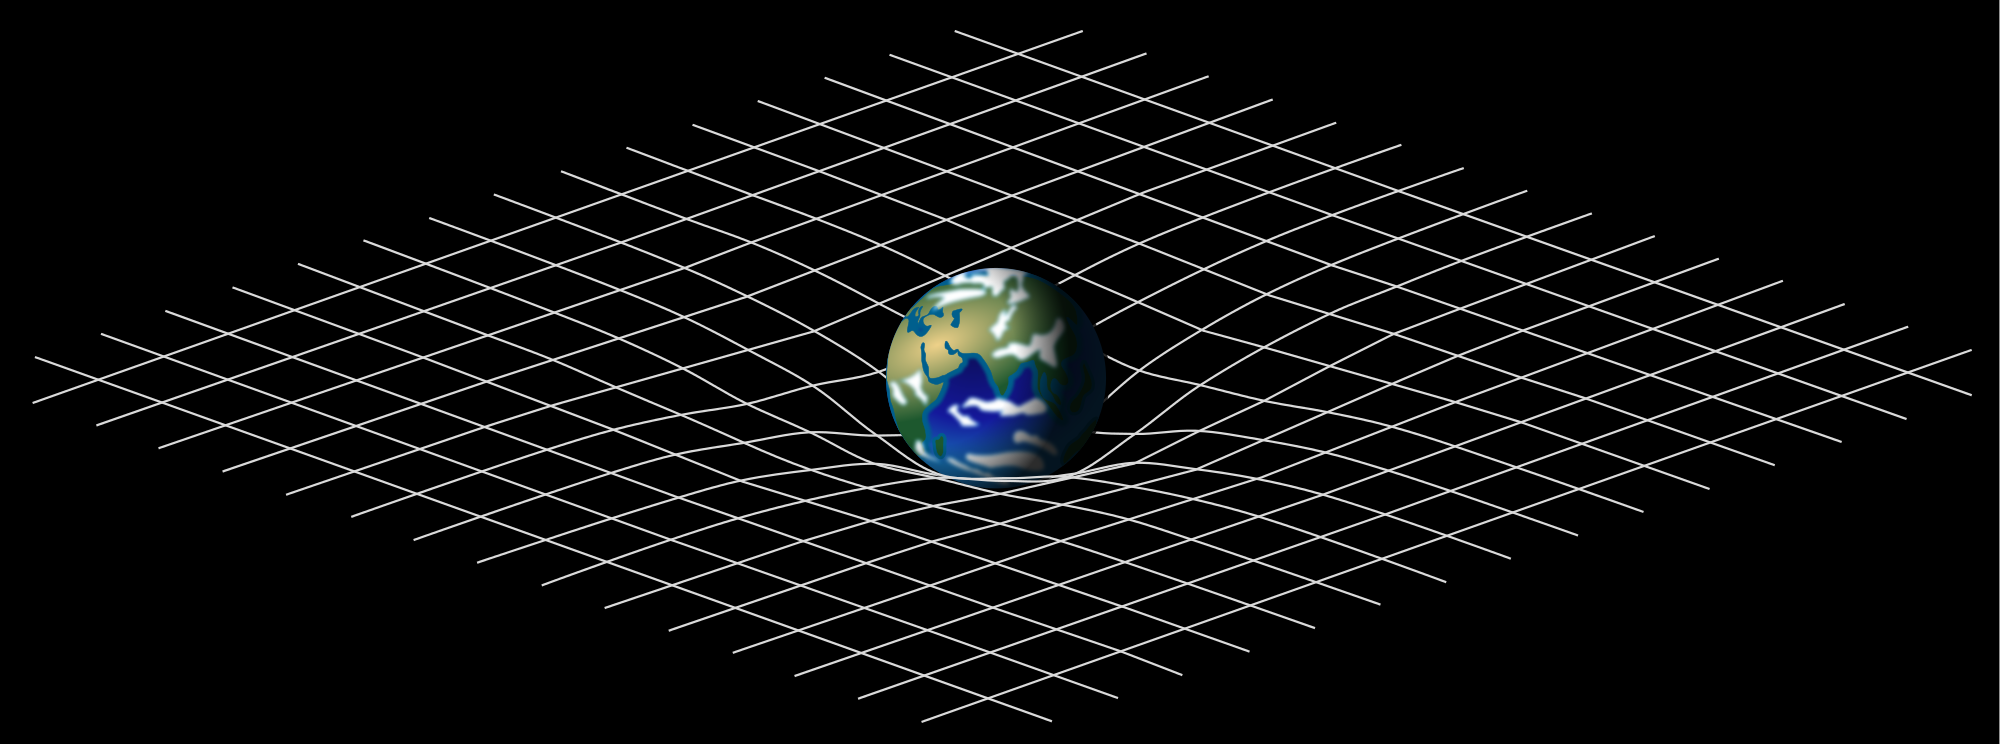 Einstein's theory of relativity predicted that space and time exist in a mesh-like continuum, which can be bent by gravity.